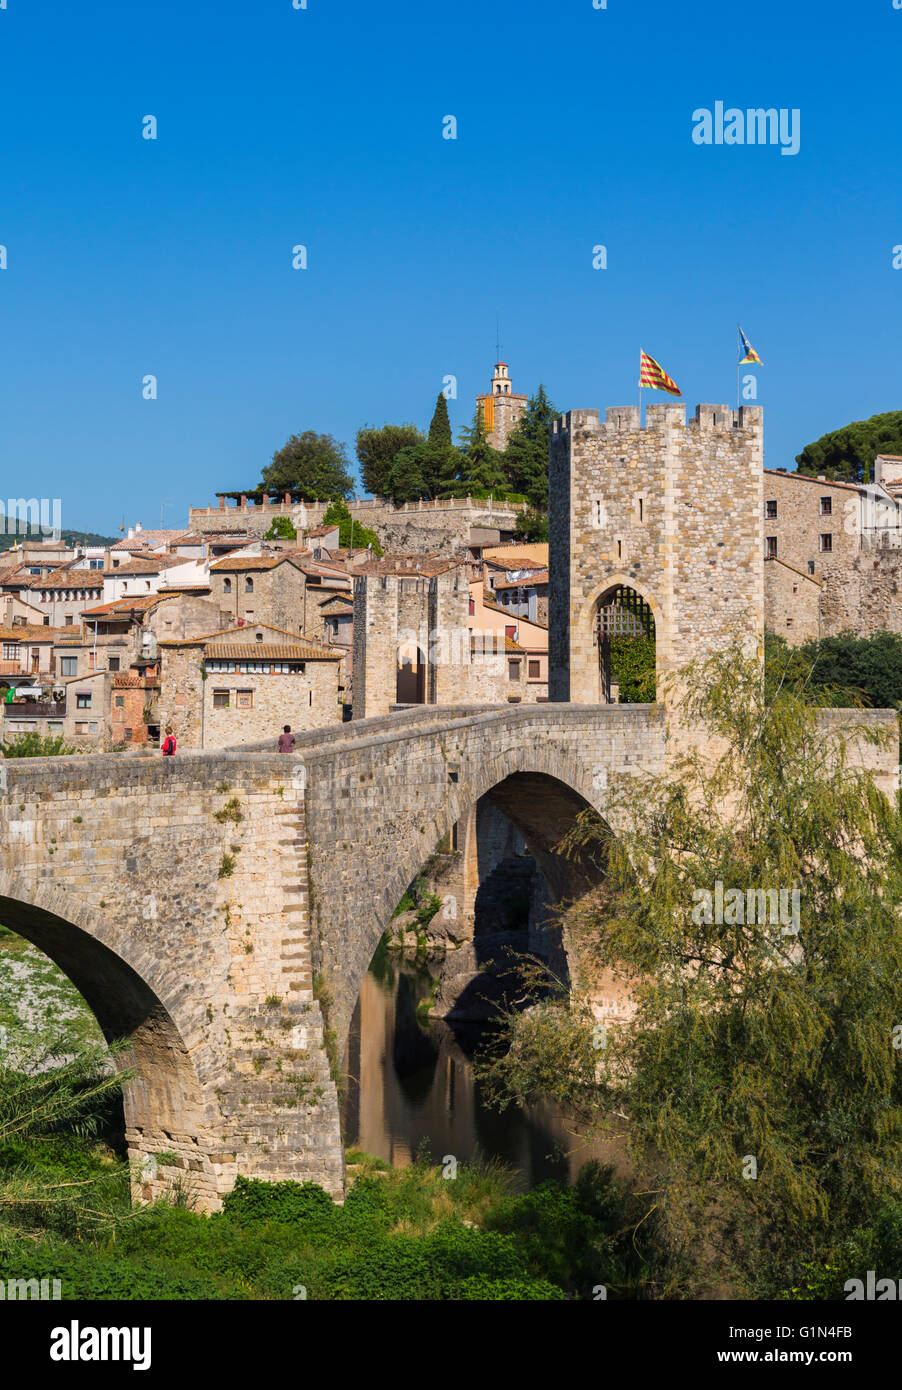 Besalu, Girona Province, Catalonia, Spain.  Fortified bridge known as El Pont Vell, the Old Bridge, crossing the - Stock Image